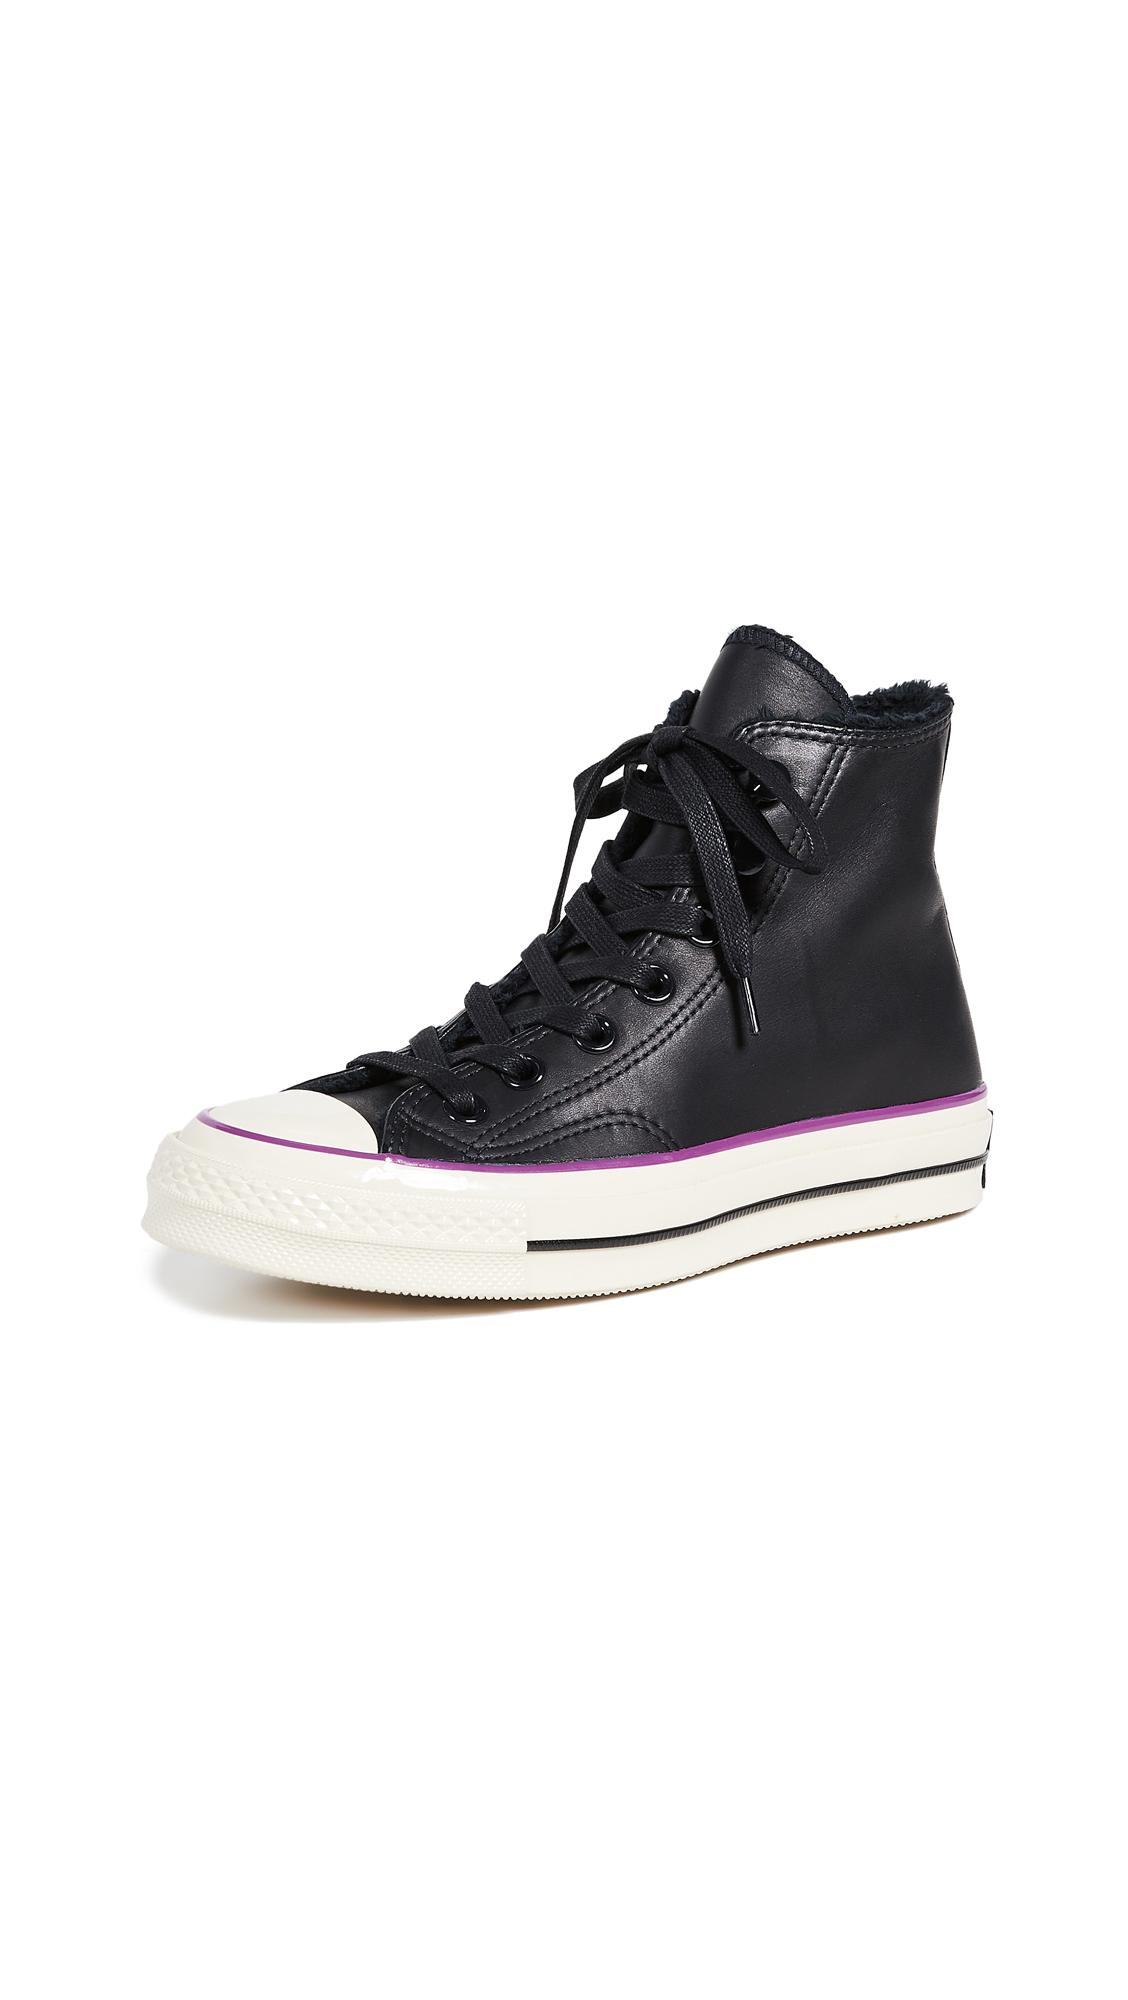 31785686badf Converse Chuck Taylor All Star Ct 70 Street Warmer High Top Sneaker In Black